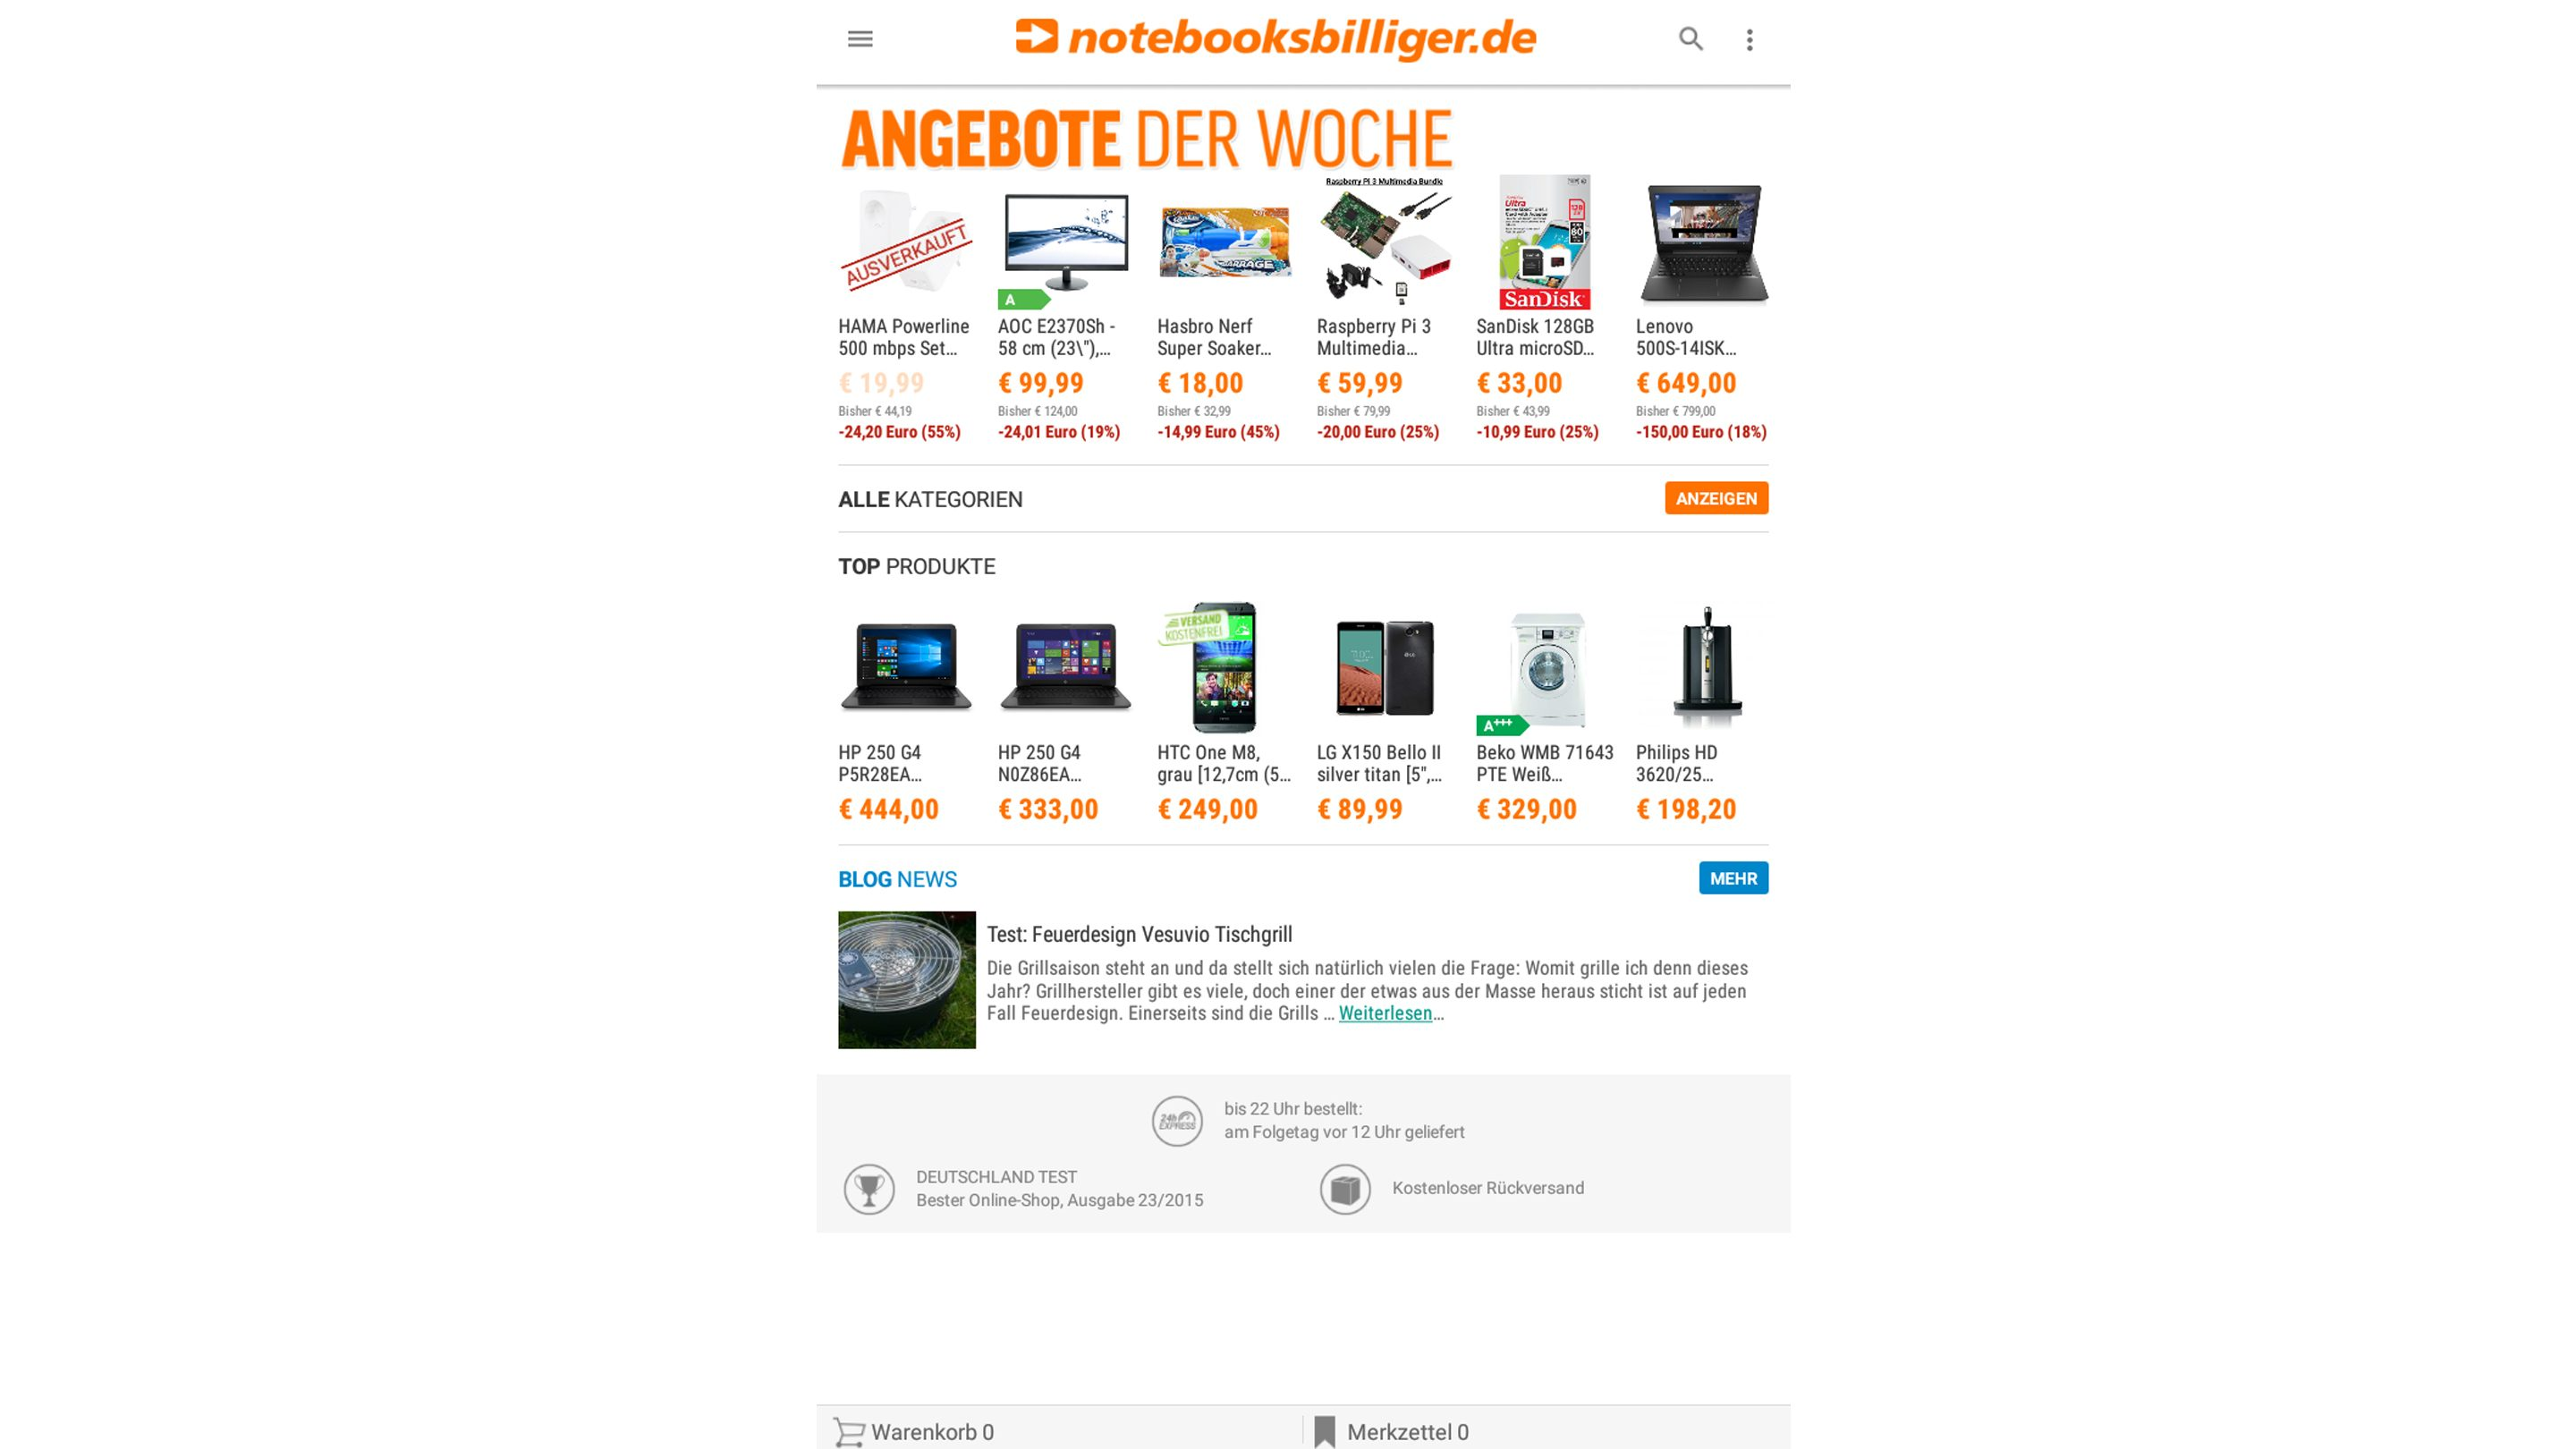 Point-of-View-TAB-I847—Anwendungen—Schoppen